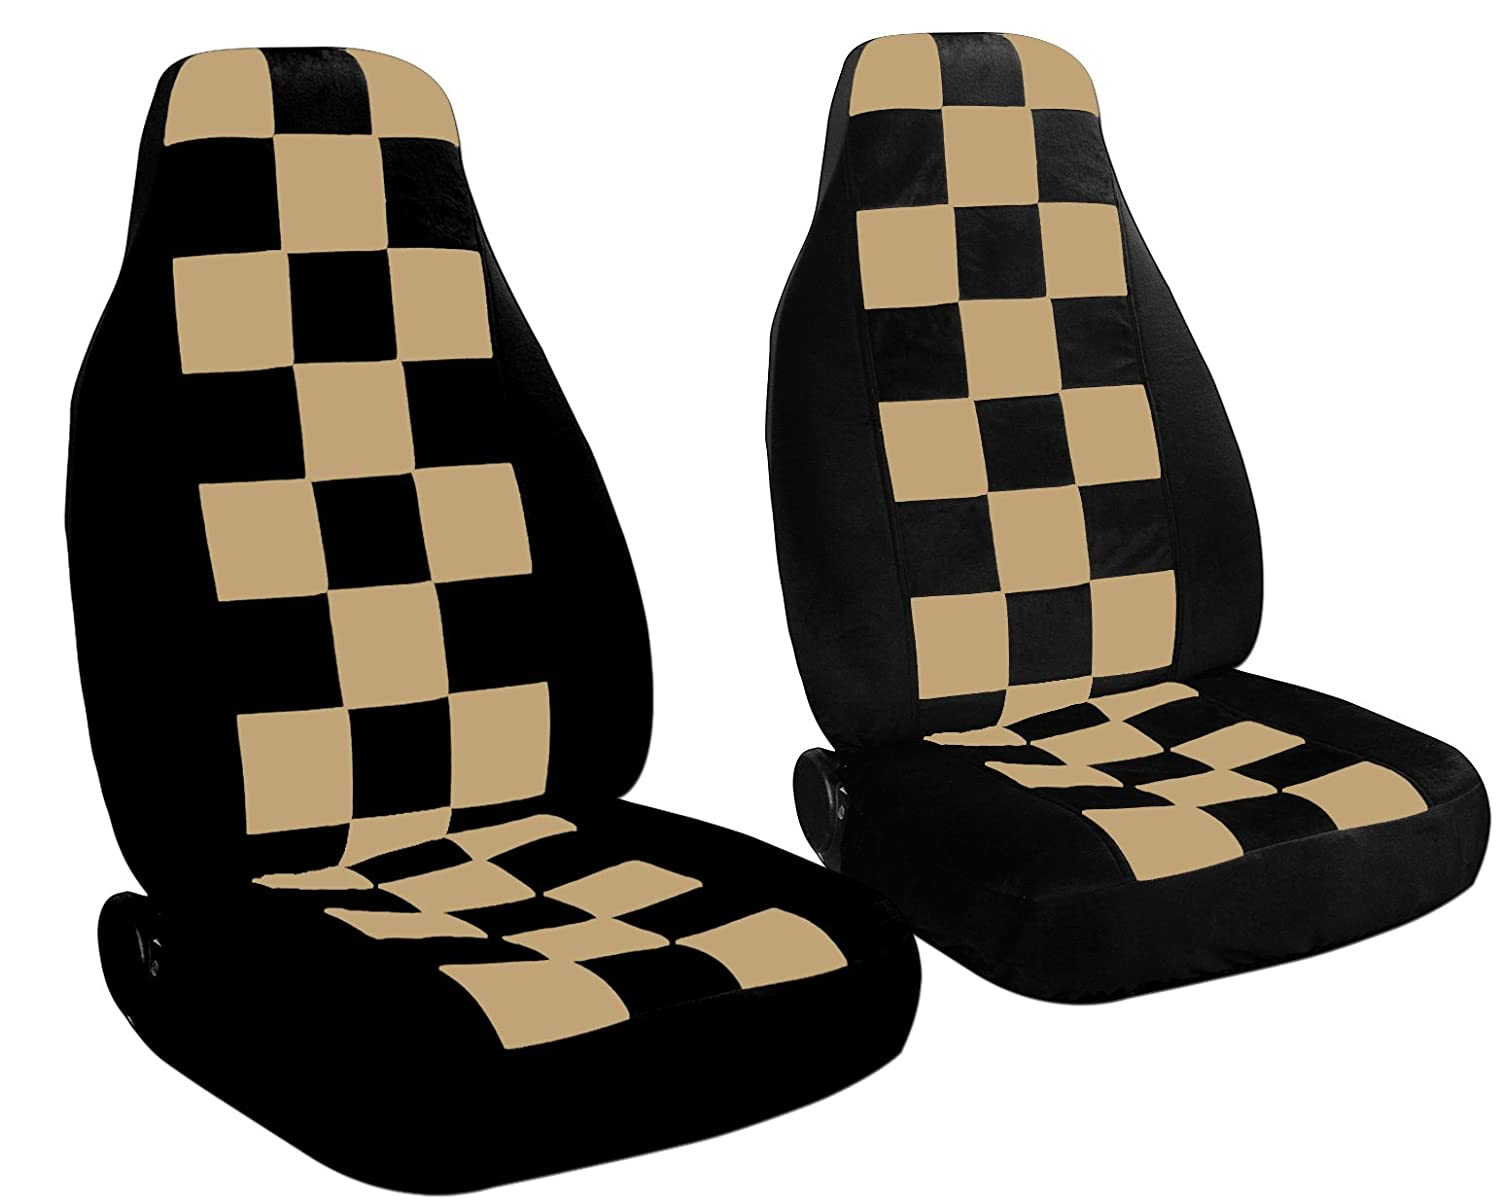 2 Black and Tan Checkered seat covers for a 2010 to 2013 Chevrolet Equinox. Side airbag friendly. 2 black and tan checkered seat covers for a 2010 to 2013 chevrolet equinox side airbag friendly